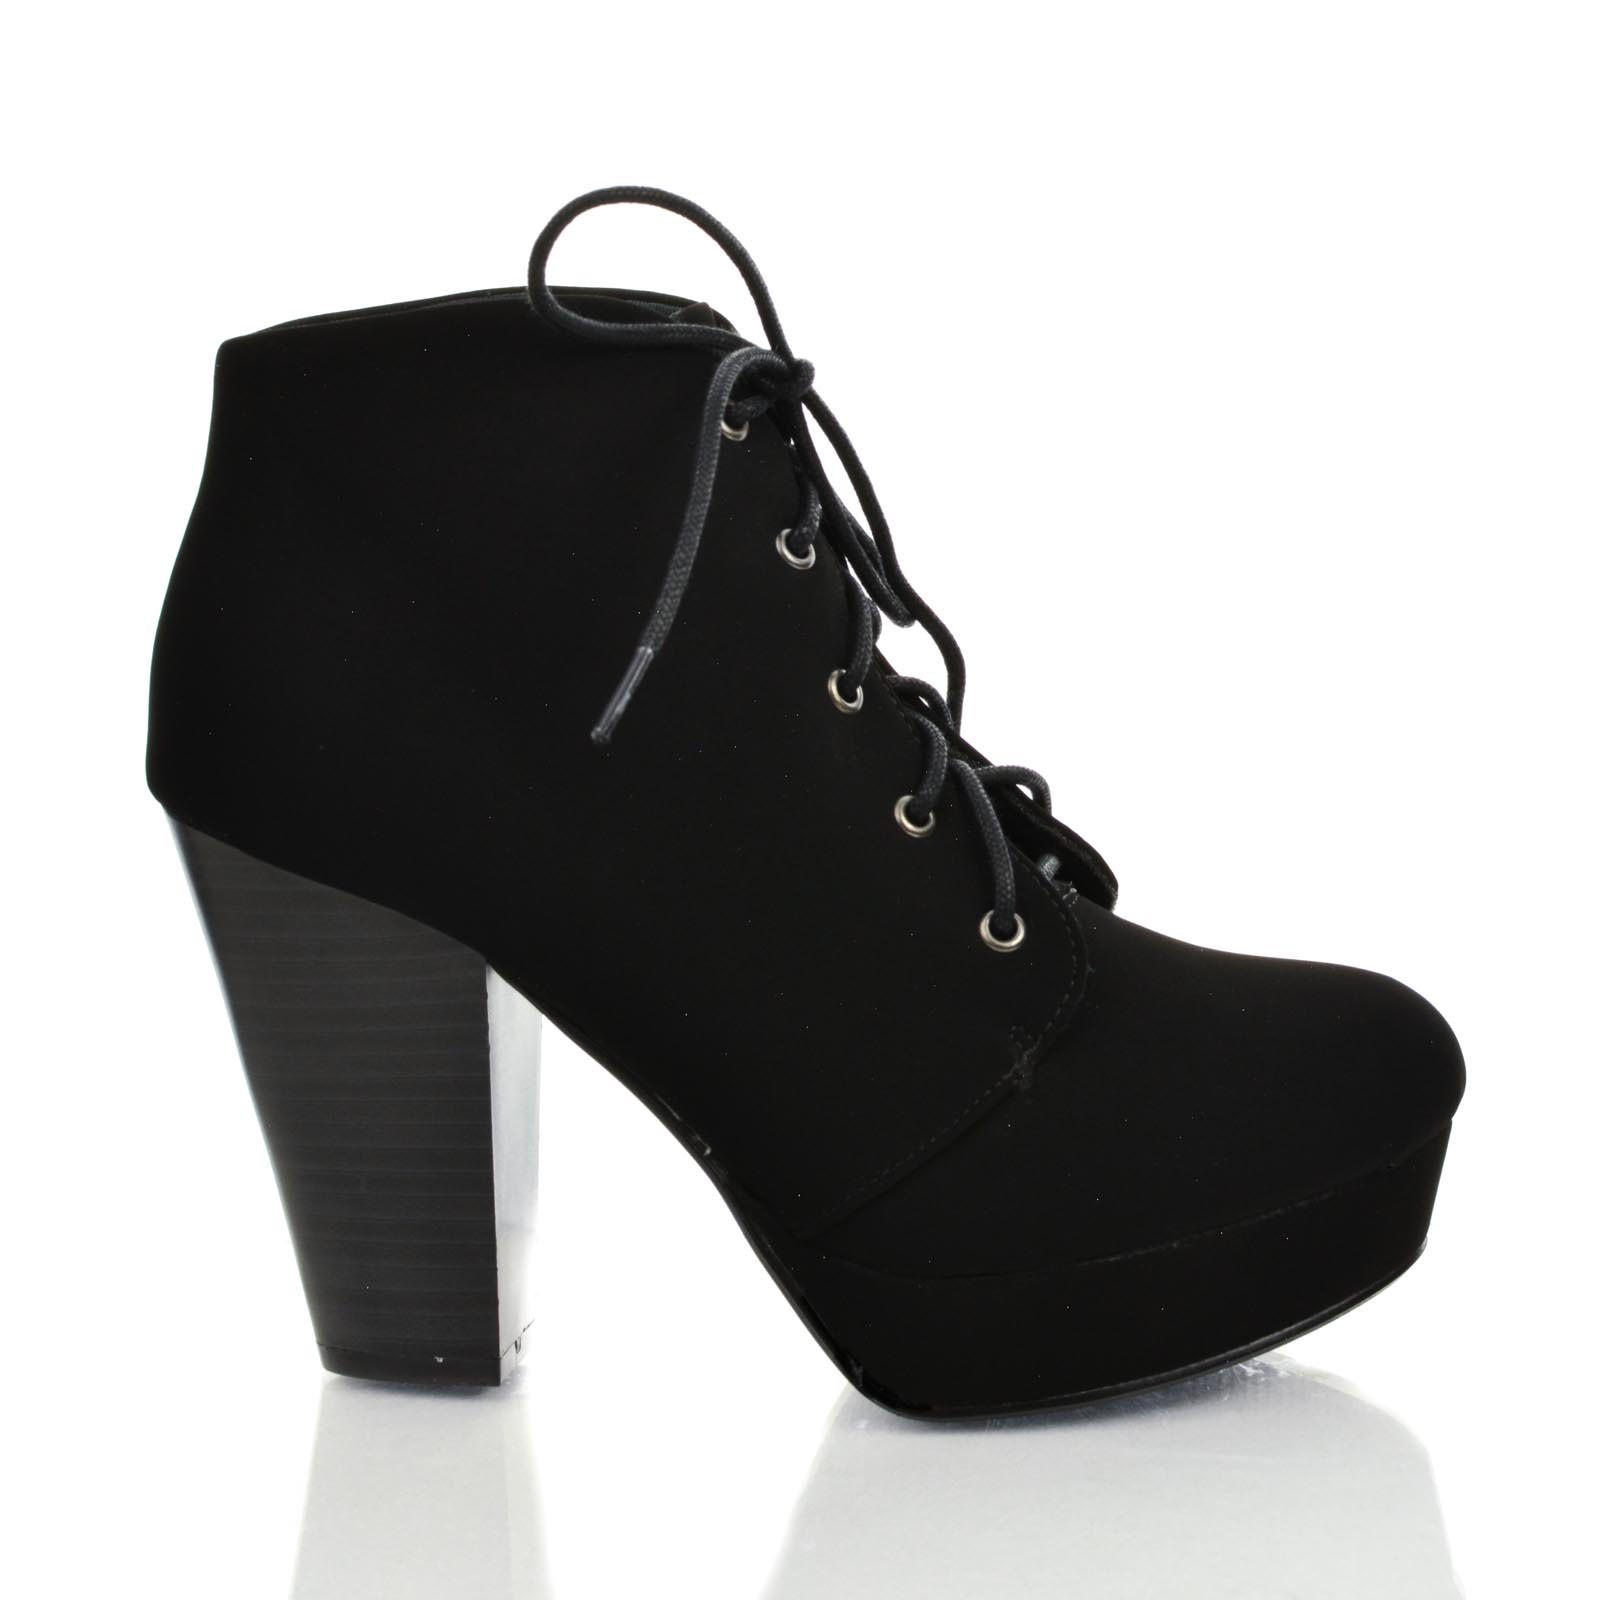 Image of Agenda Black Nubuck by Soda, Lace Up Ankle Bootie w Chunky Stacked Heels